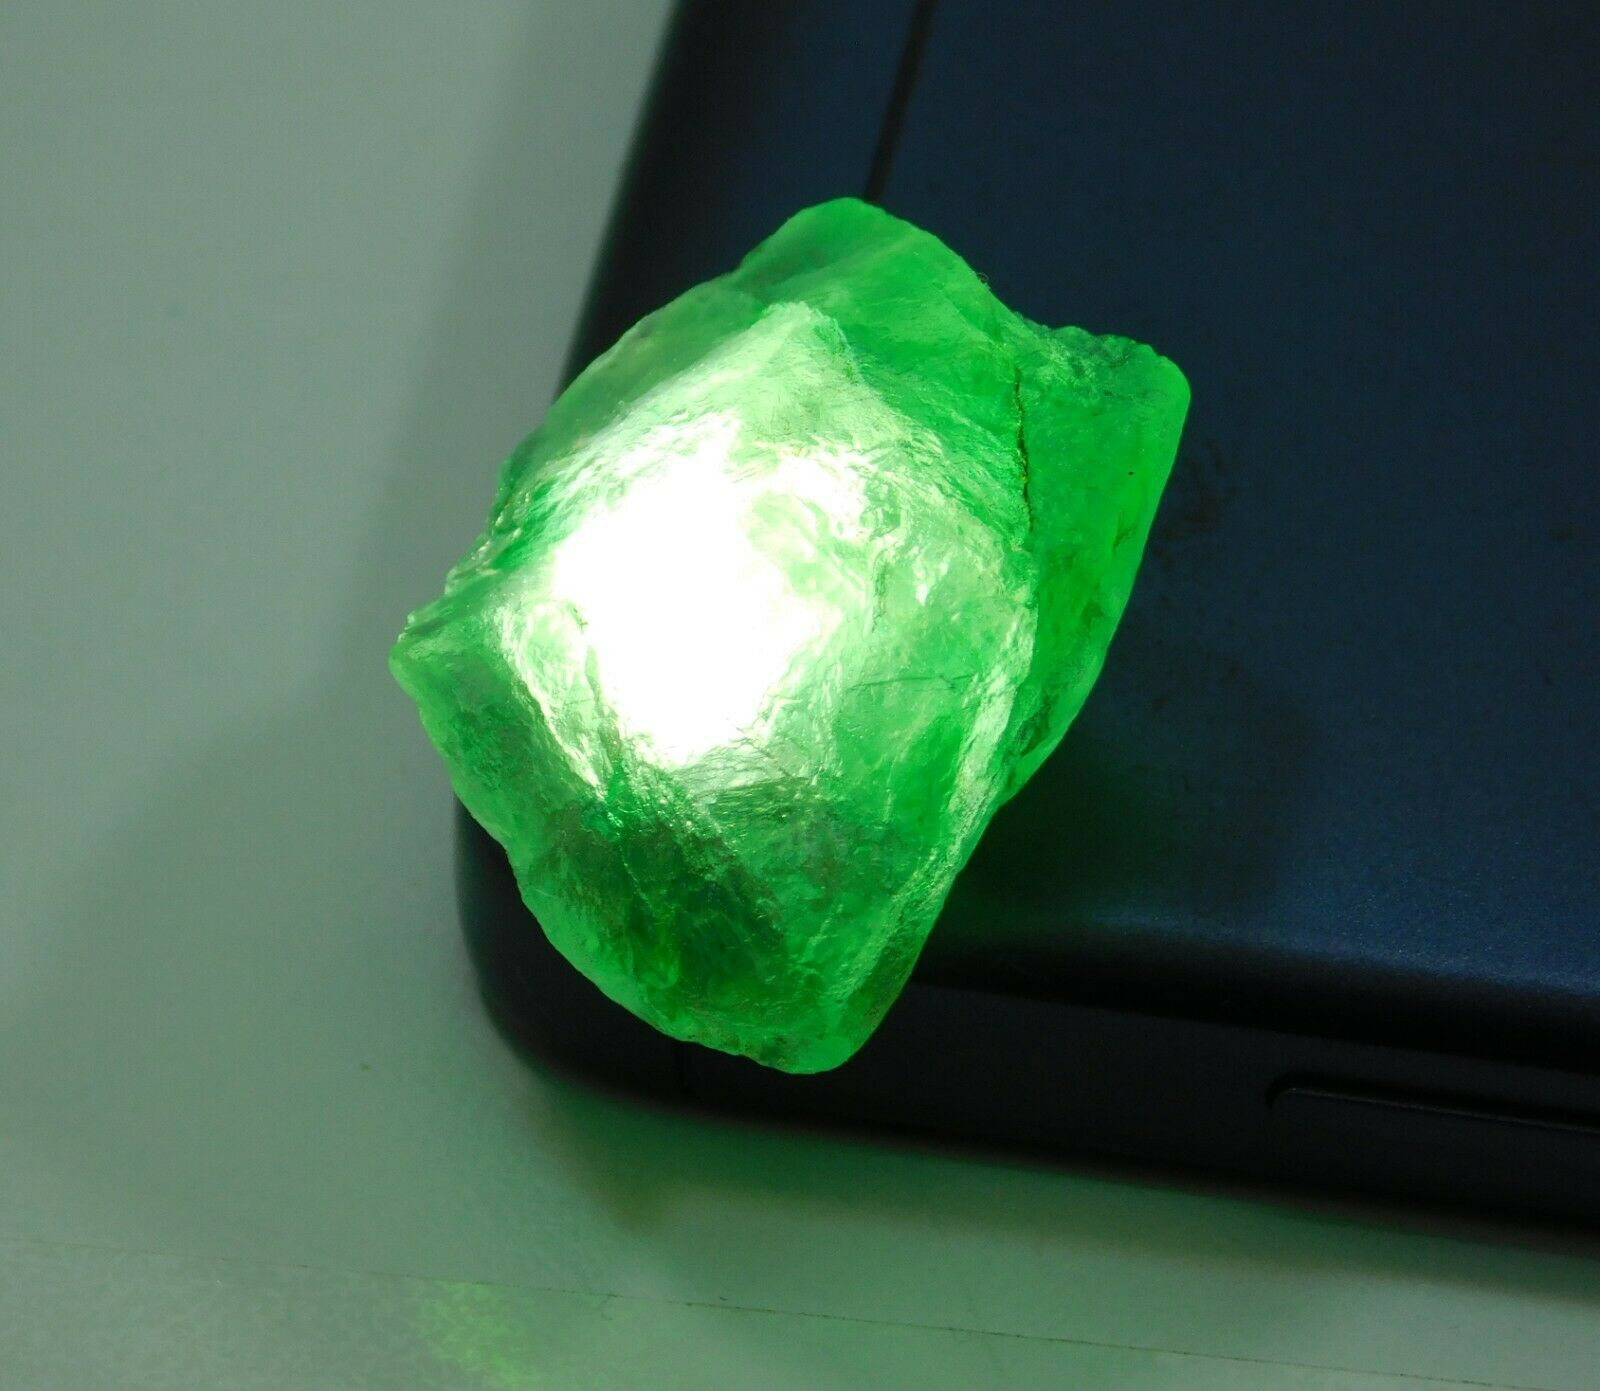 Natural Translucent Colombian Emerald Green Loose Mineral Rough Details about  /291.45 Cts